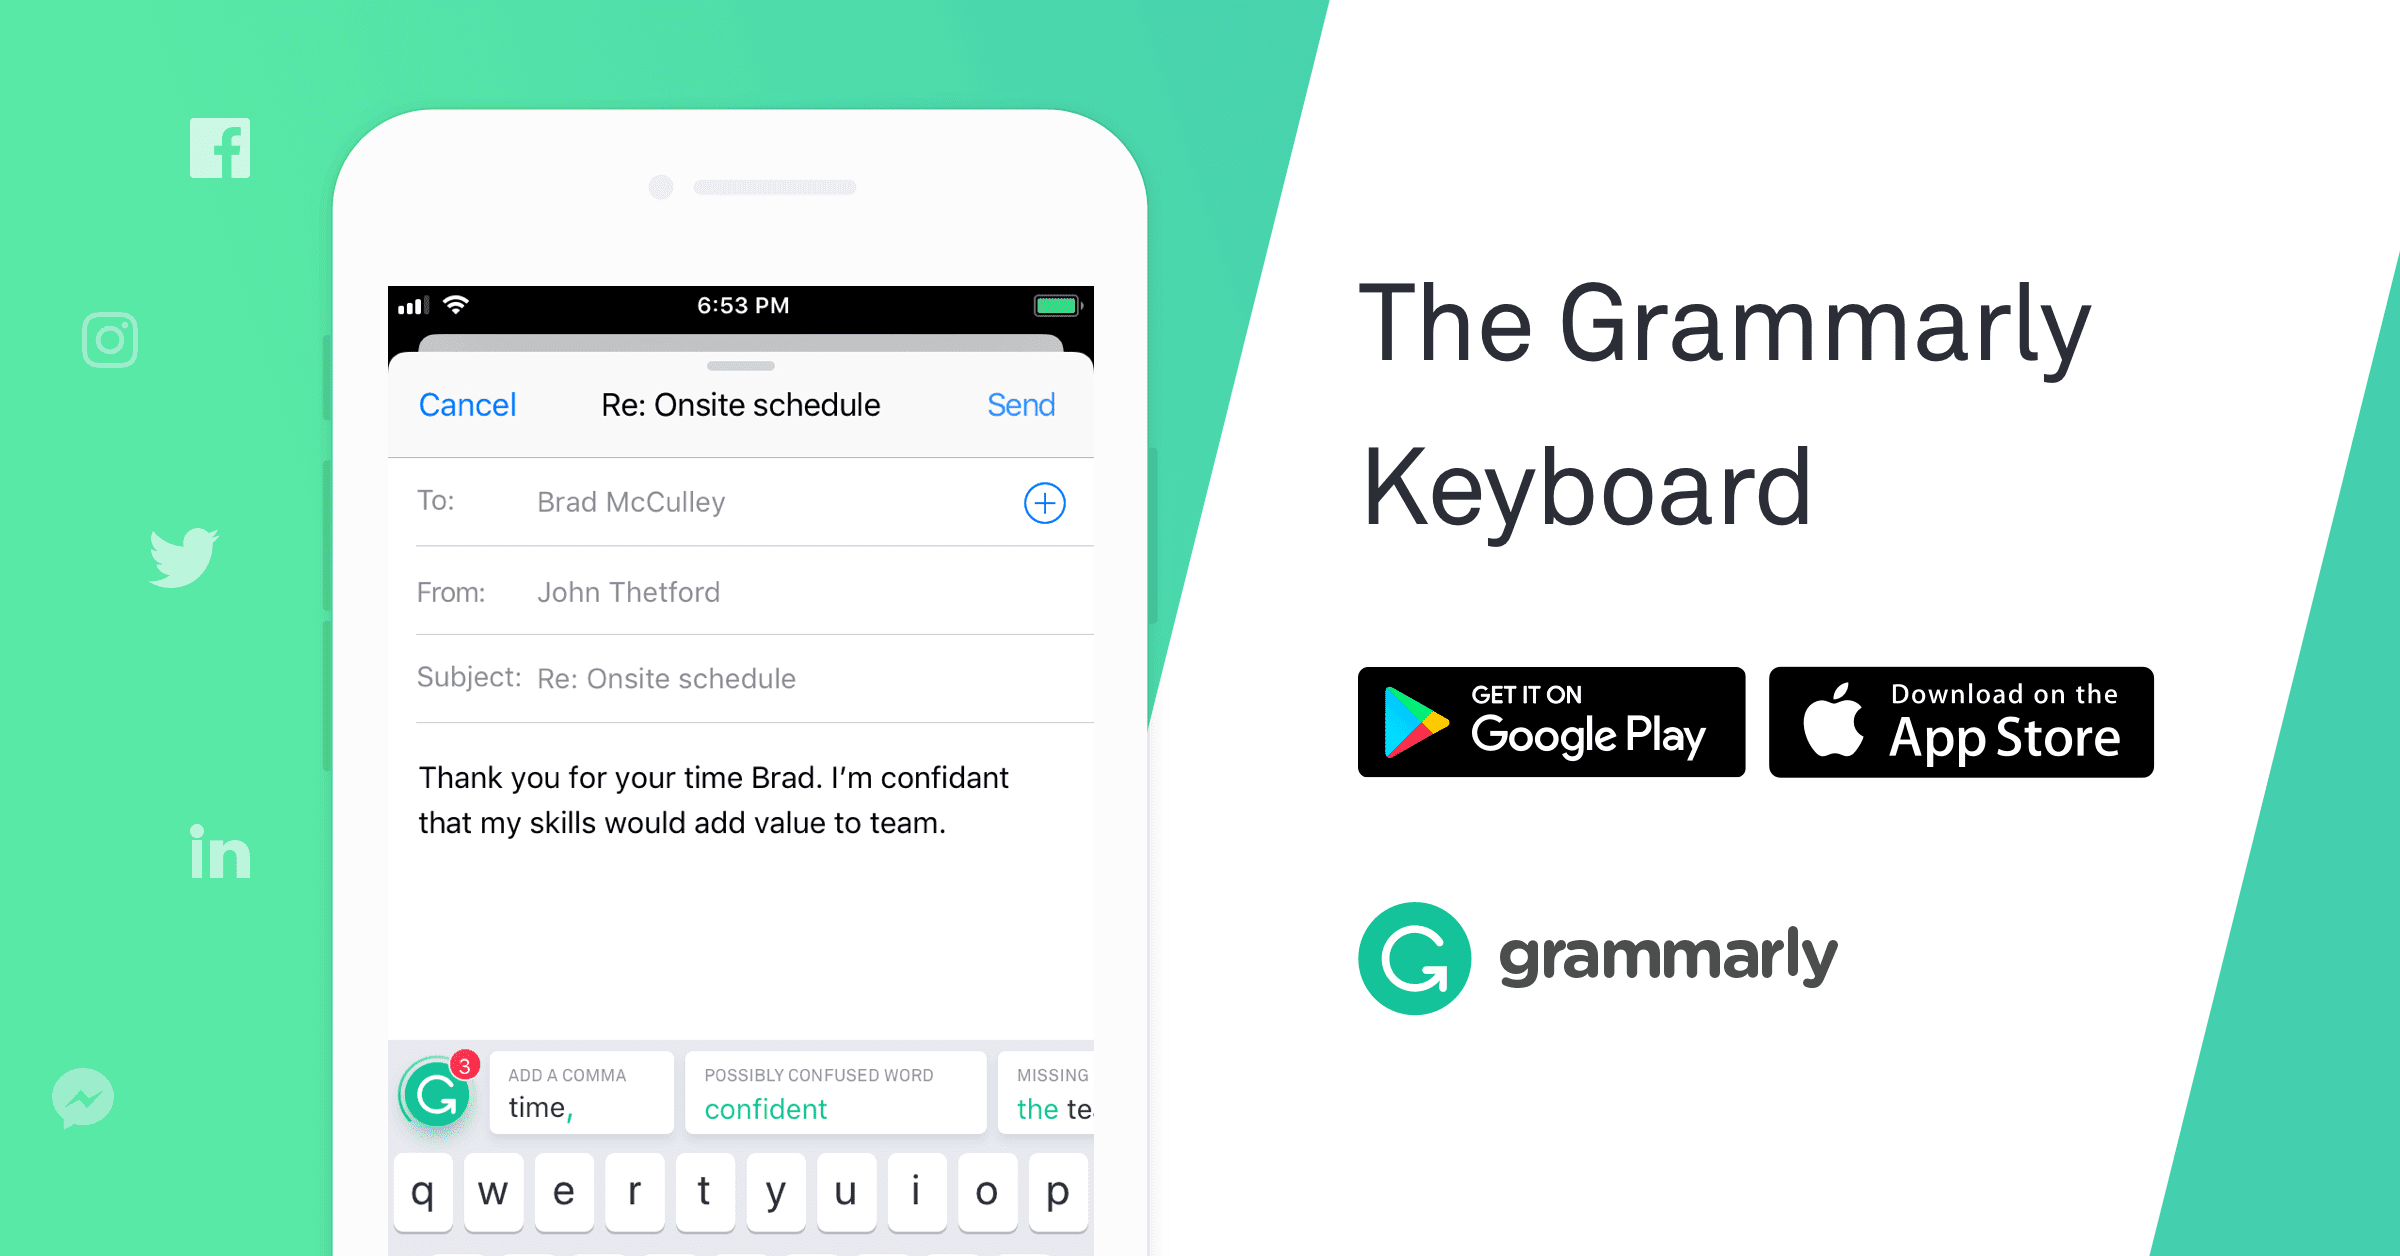 Grammarly Review 2020: Is Checking Grammar Using Grammarly Worth It?